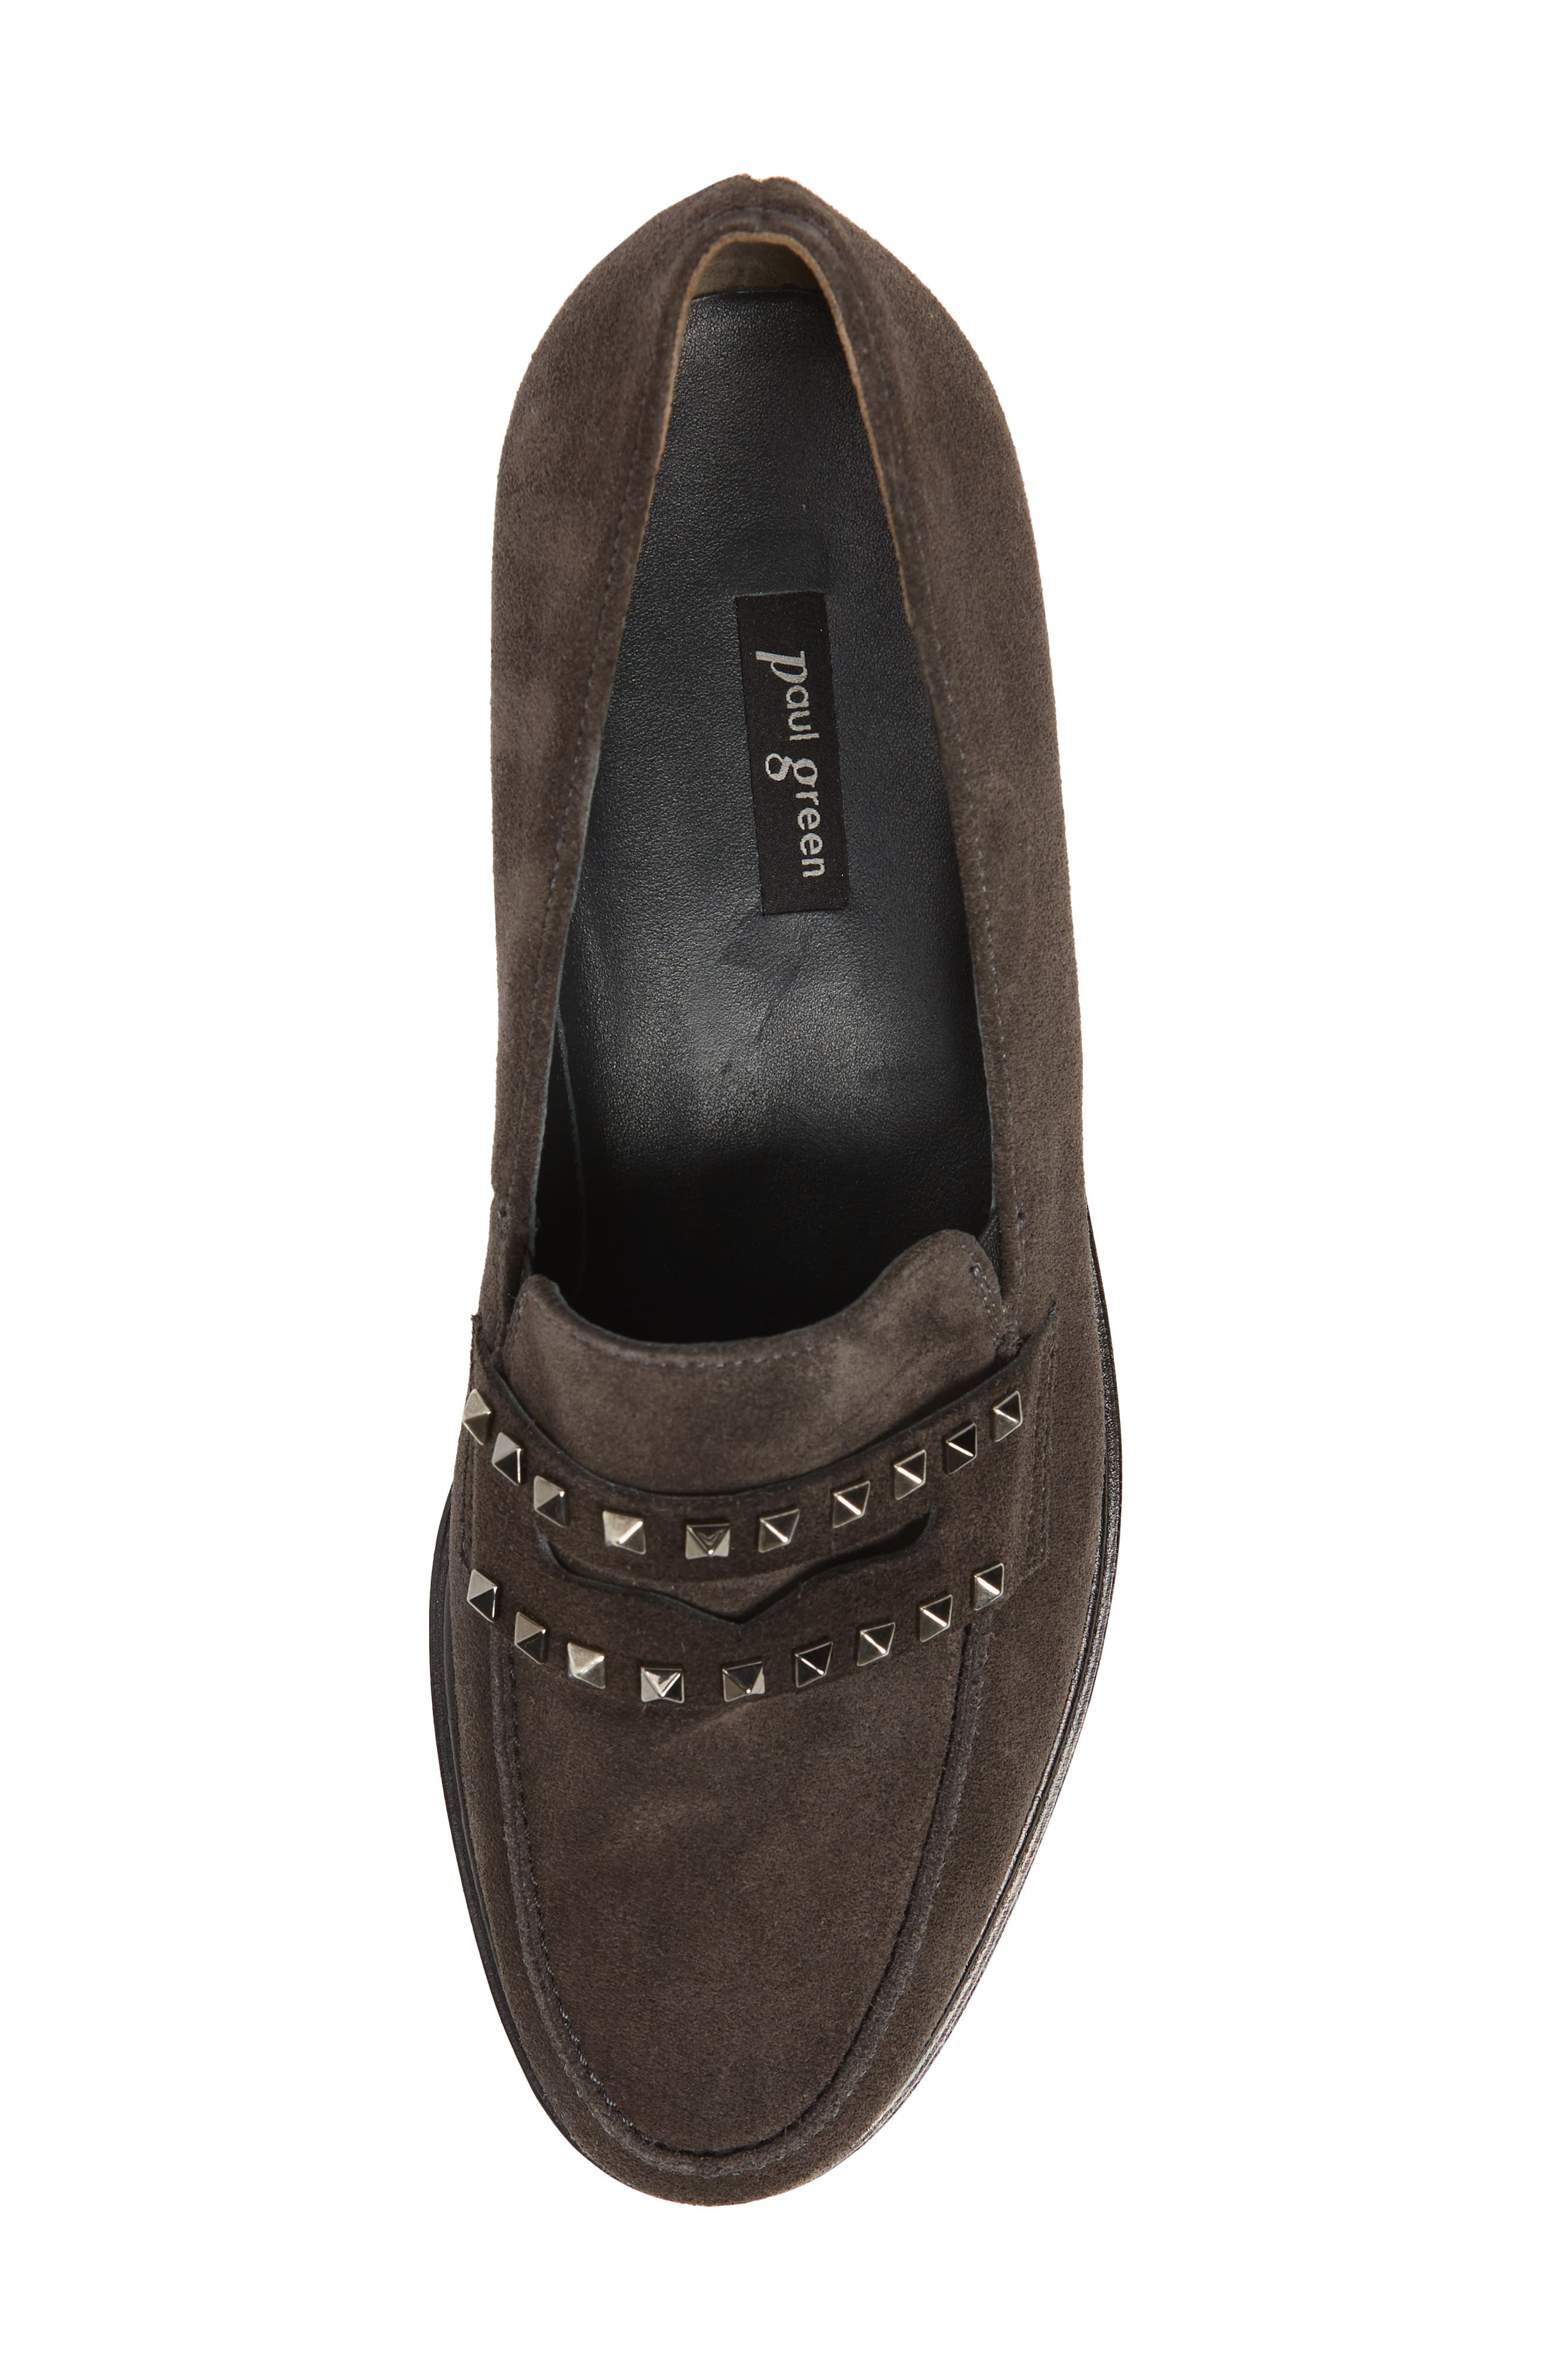 Sofia Loafer,                             Alternate thumbnail 5, color,                             ANTHRACITE SUEDE